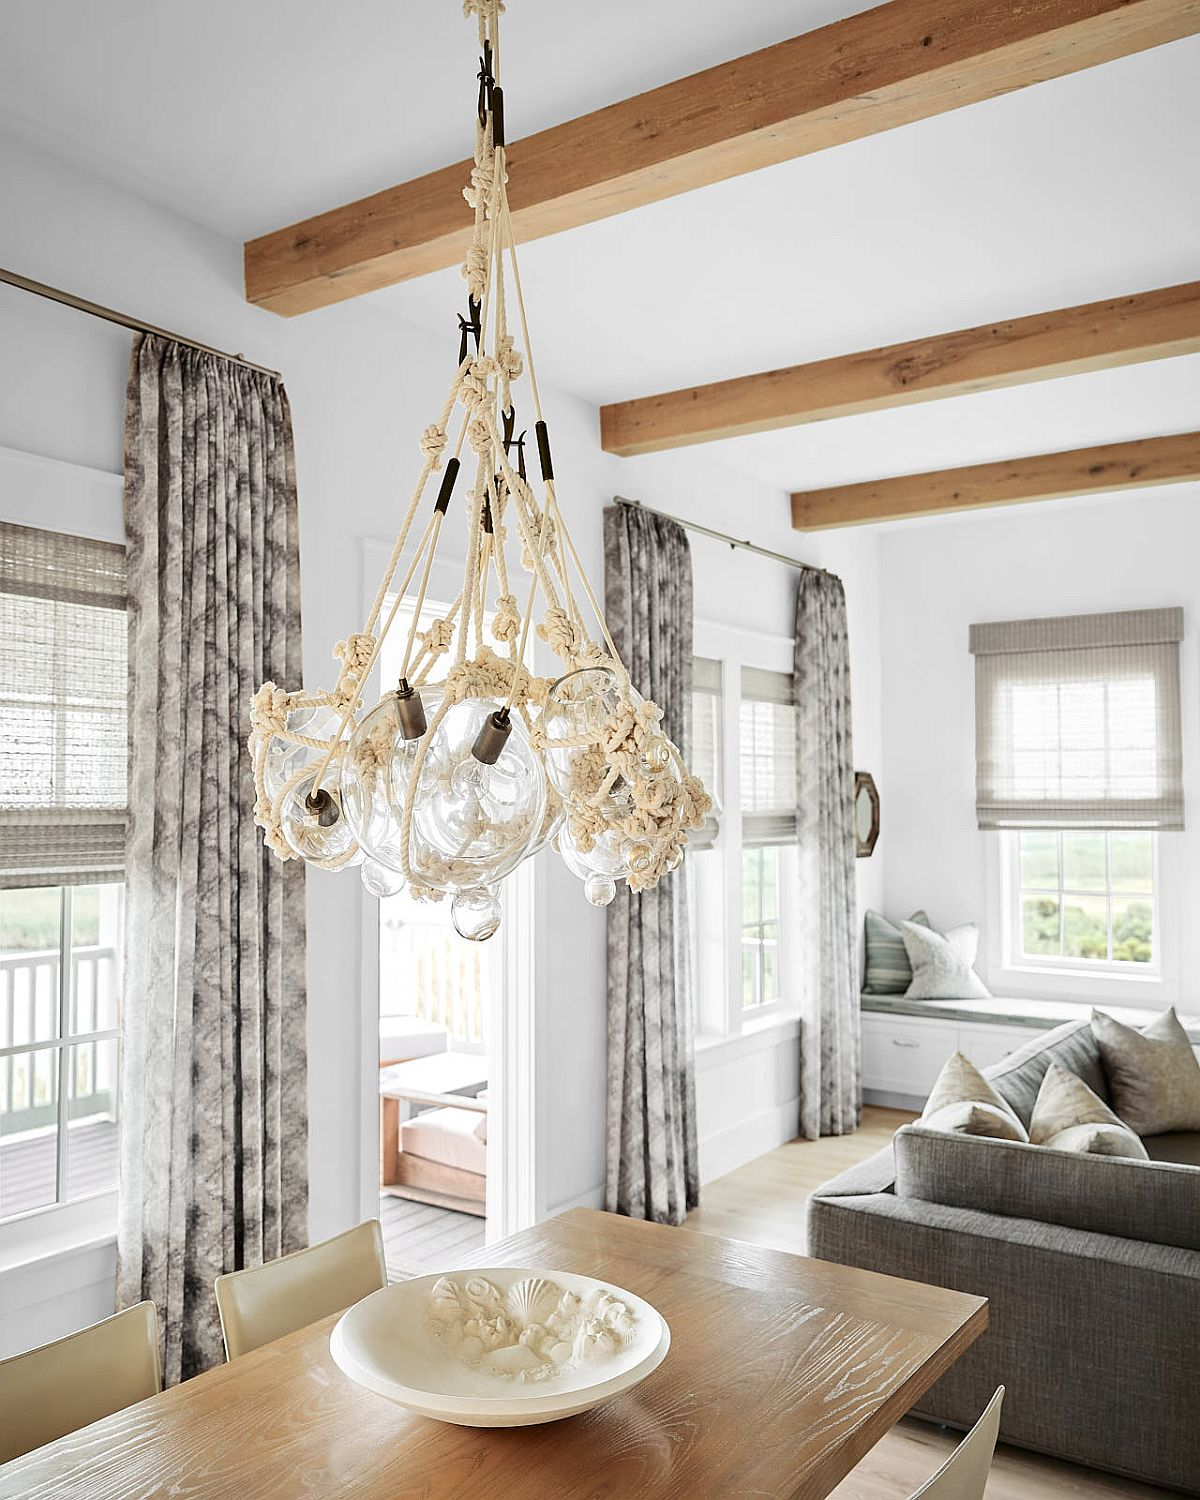 Lighting-fixture-in-the-dining-room-adds-to-the-casual-beach-style-of-the-home-90355